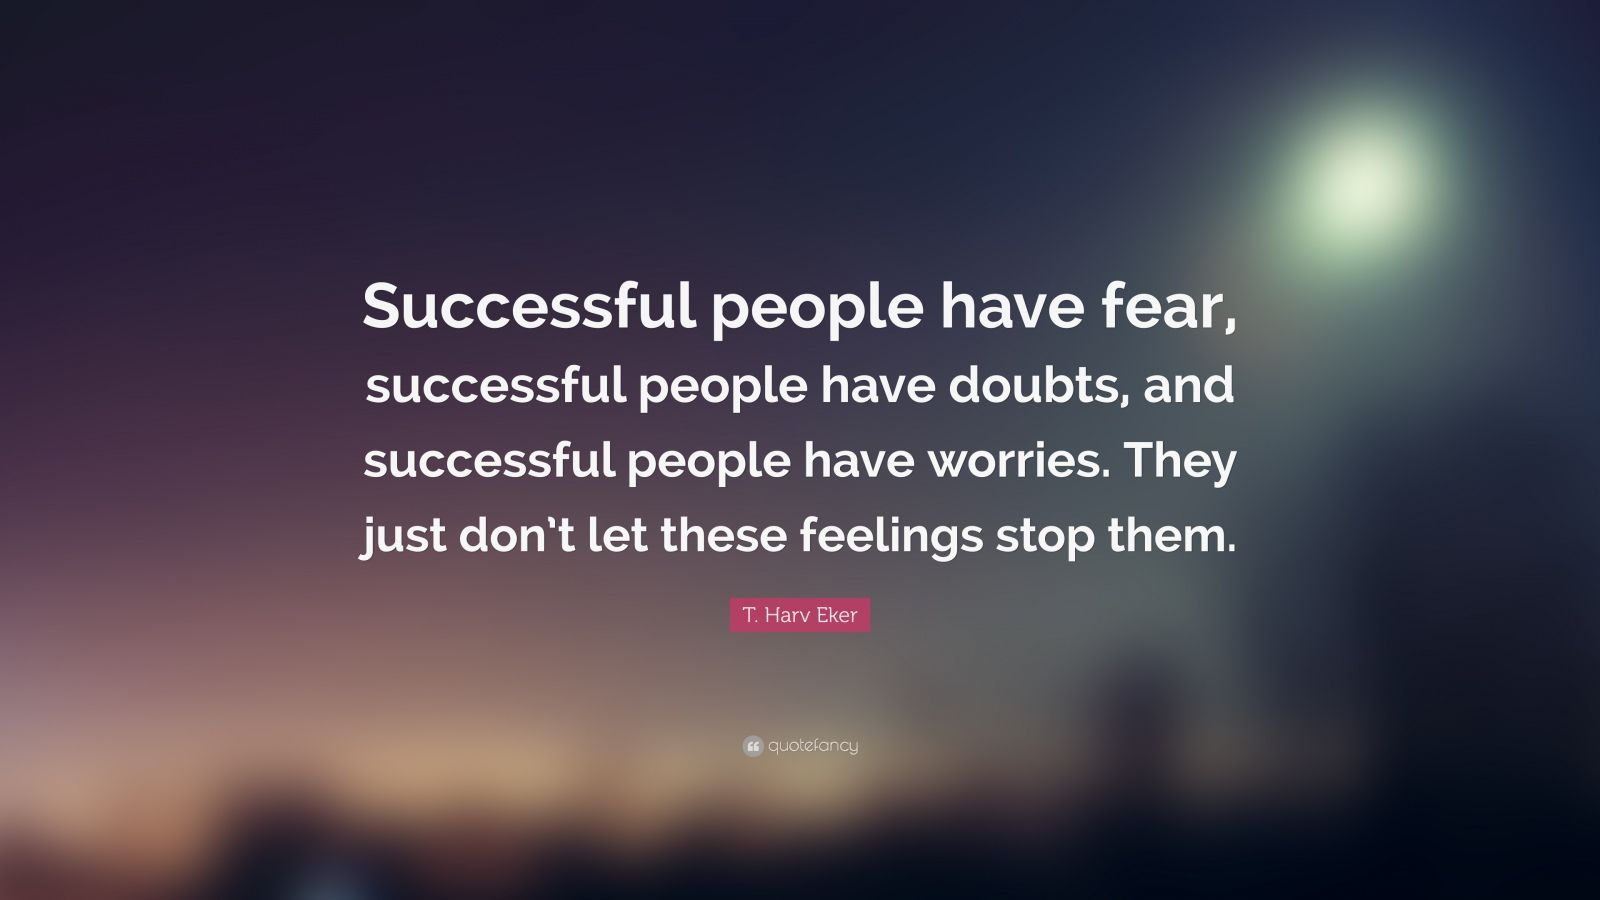 "T. Harv Eker Quote: ""Successful people have fear, successful people have doubts, and successful people have worries. They just don't let these feelings stop them."""